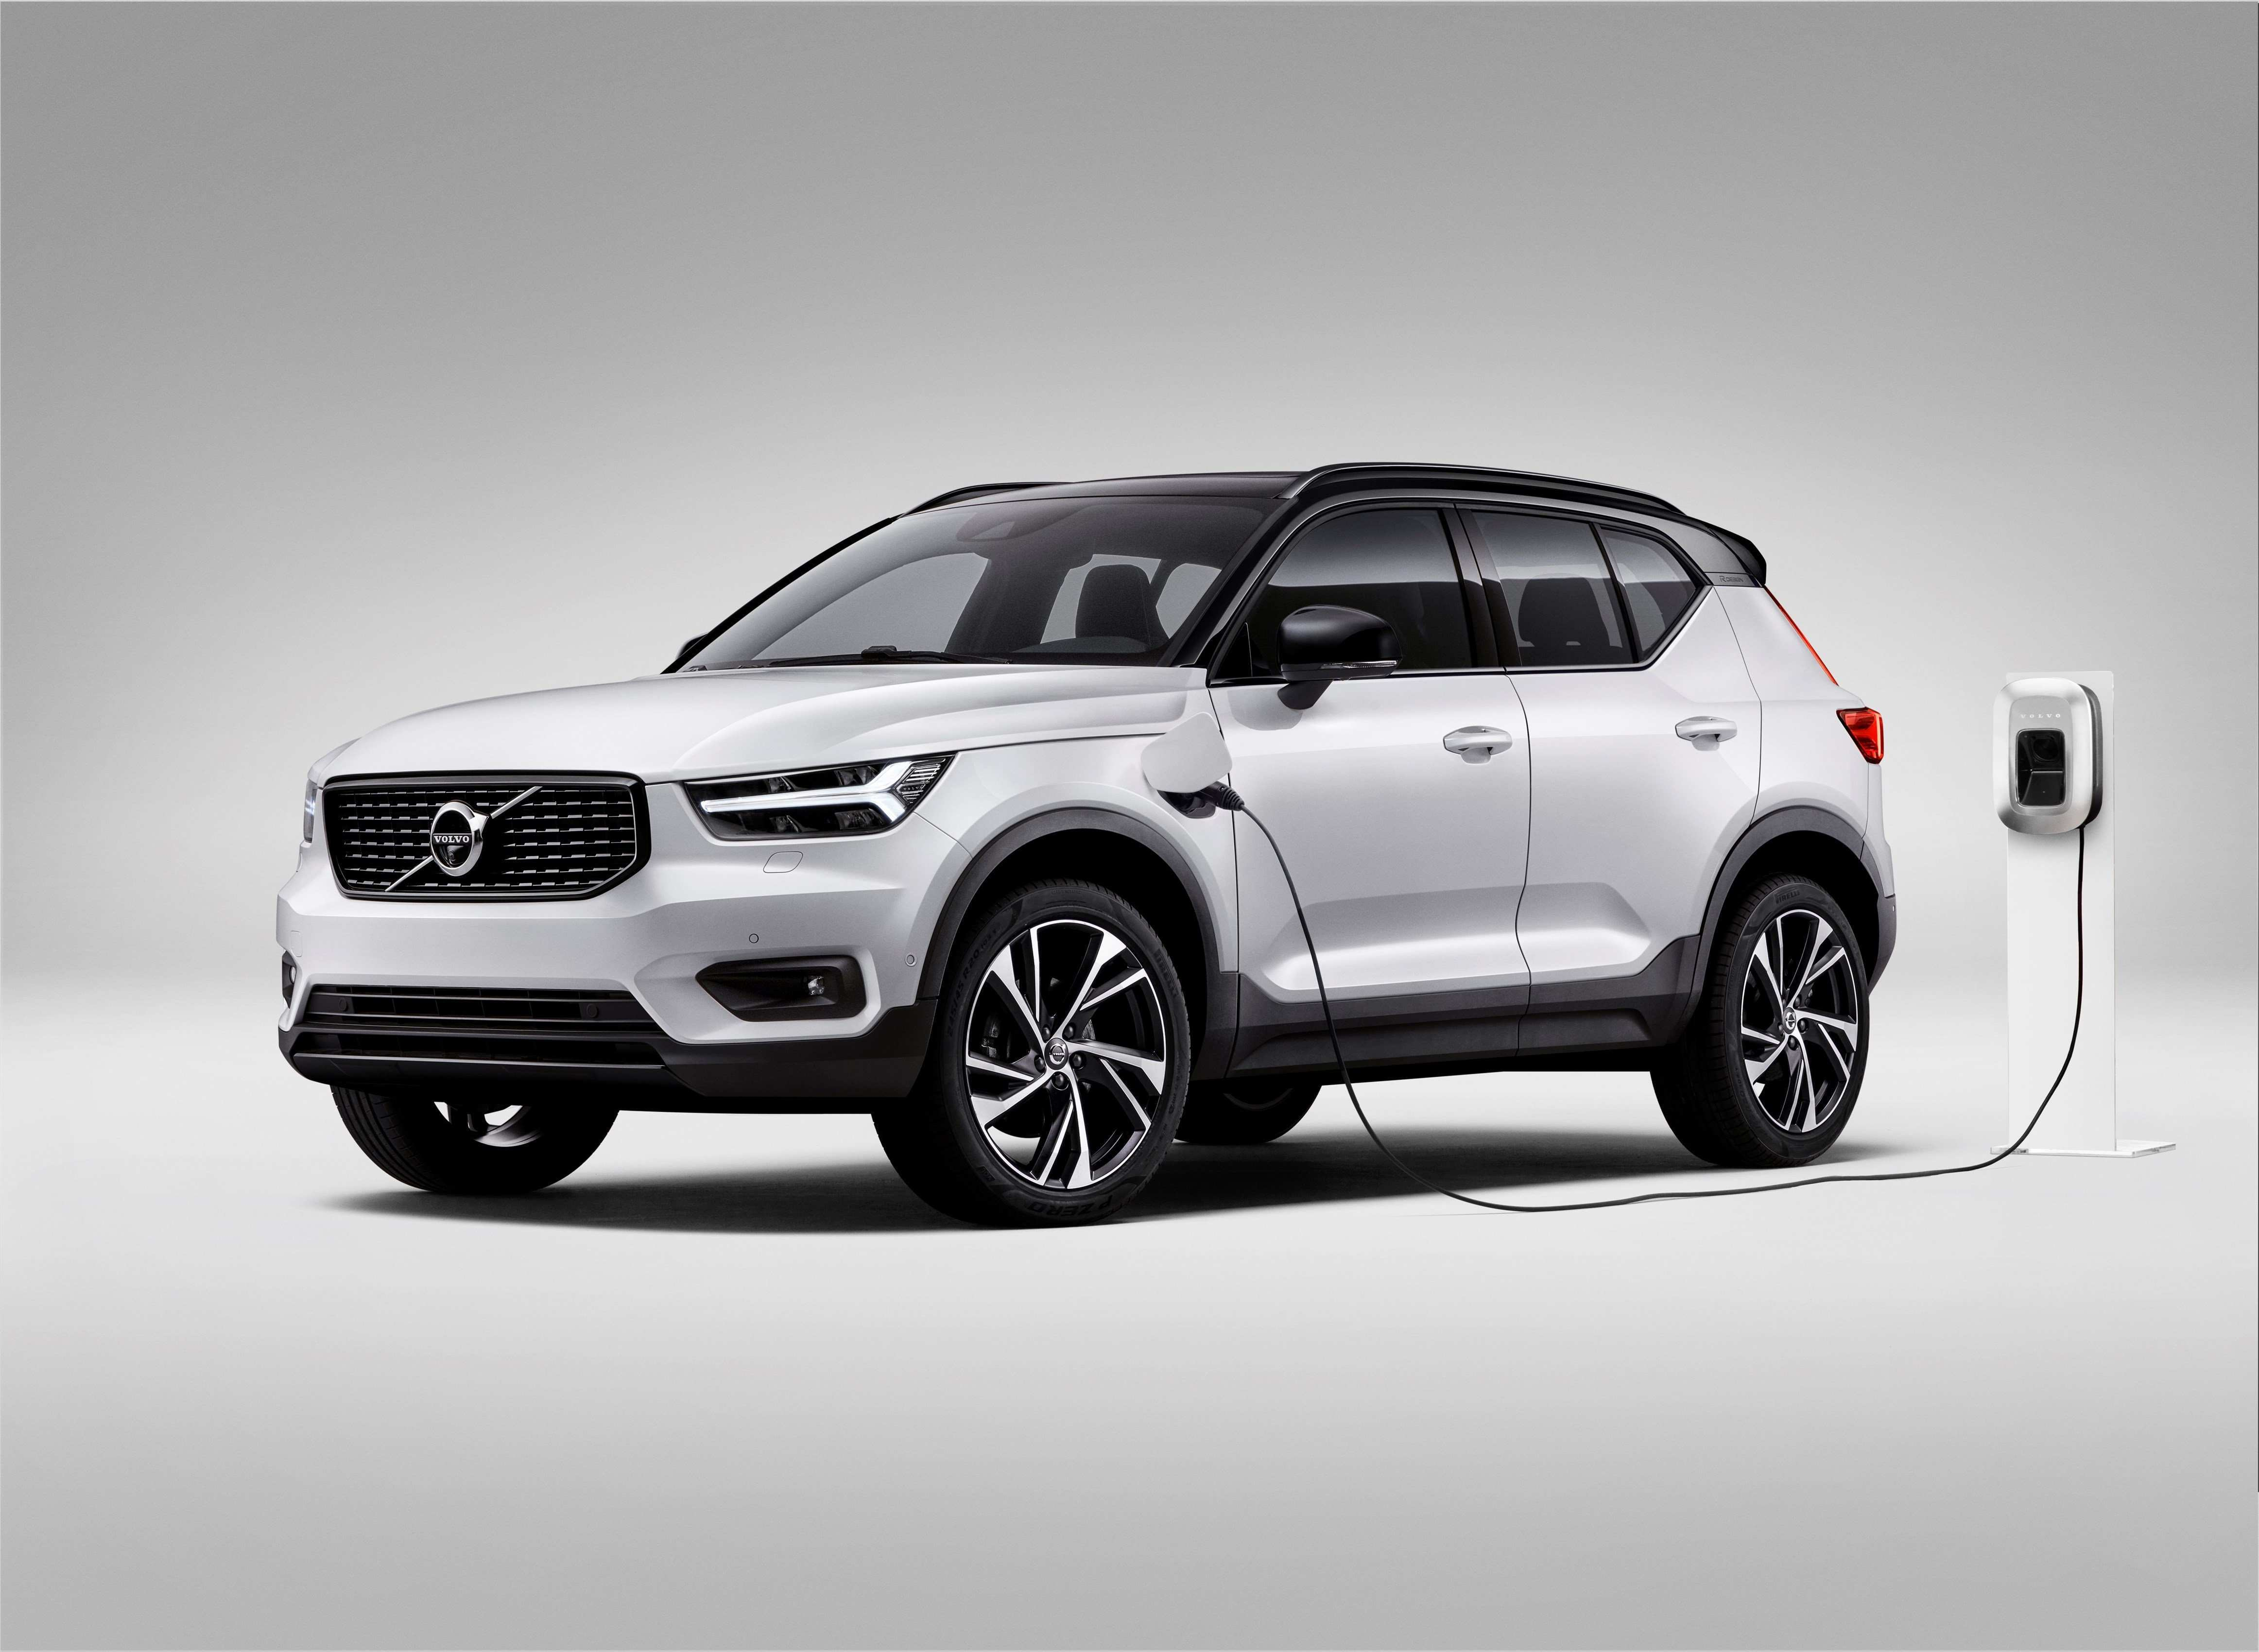 63 The Best Volvo Electric Suv 2019 First Drive Price Performance And Review Release Date by Best Volvo Electric Suv 2019 First Drive Price Performance And Review